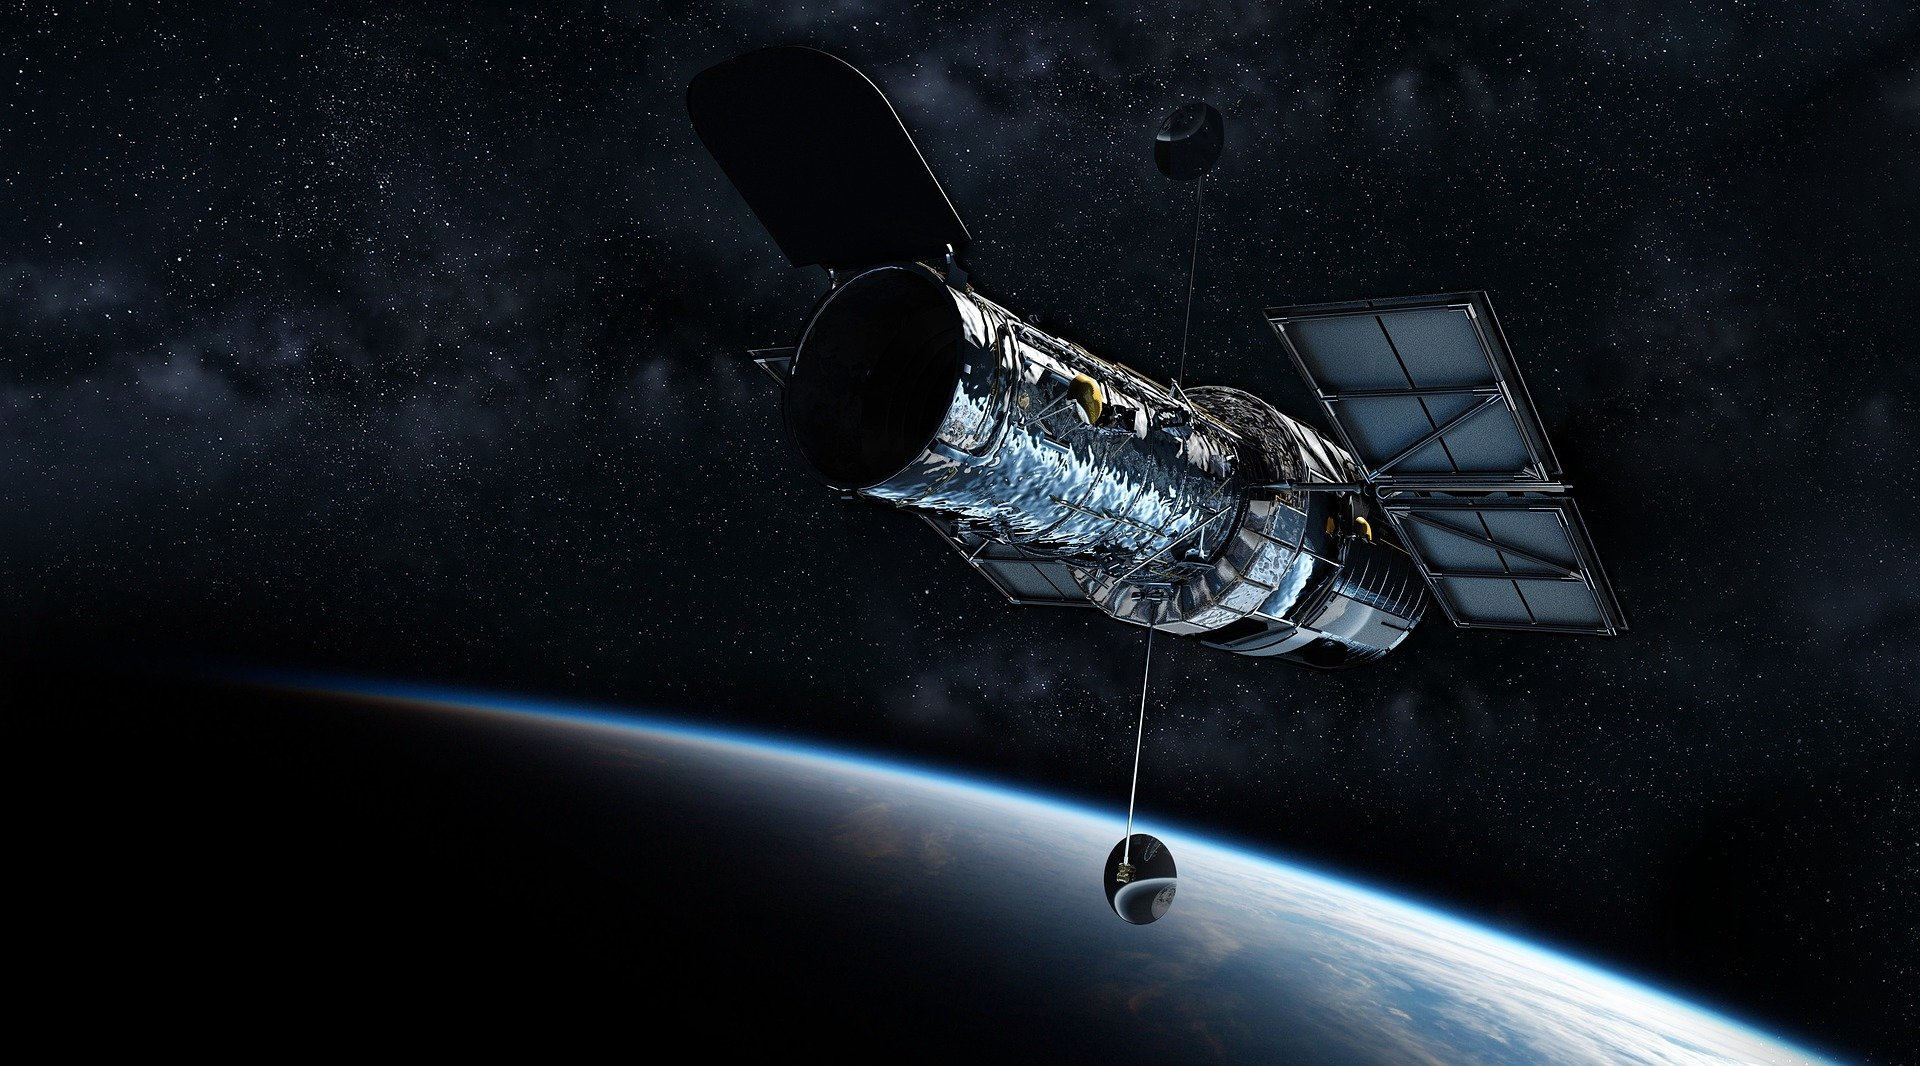 Hubble Space Telescope working again after 3-week shutdown